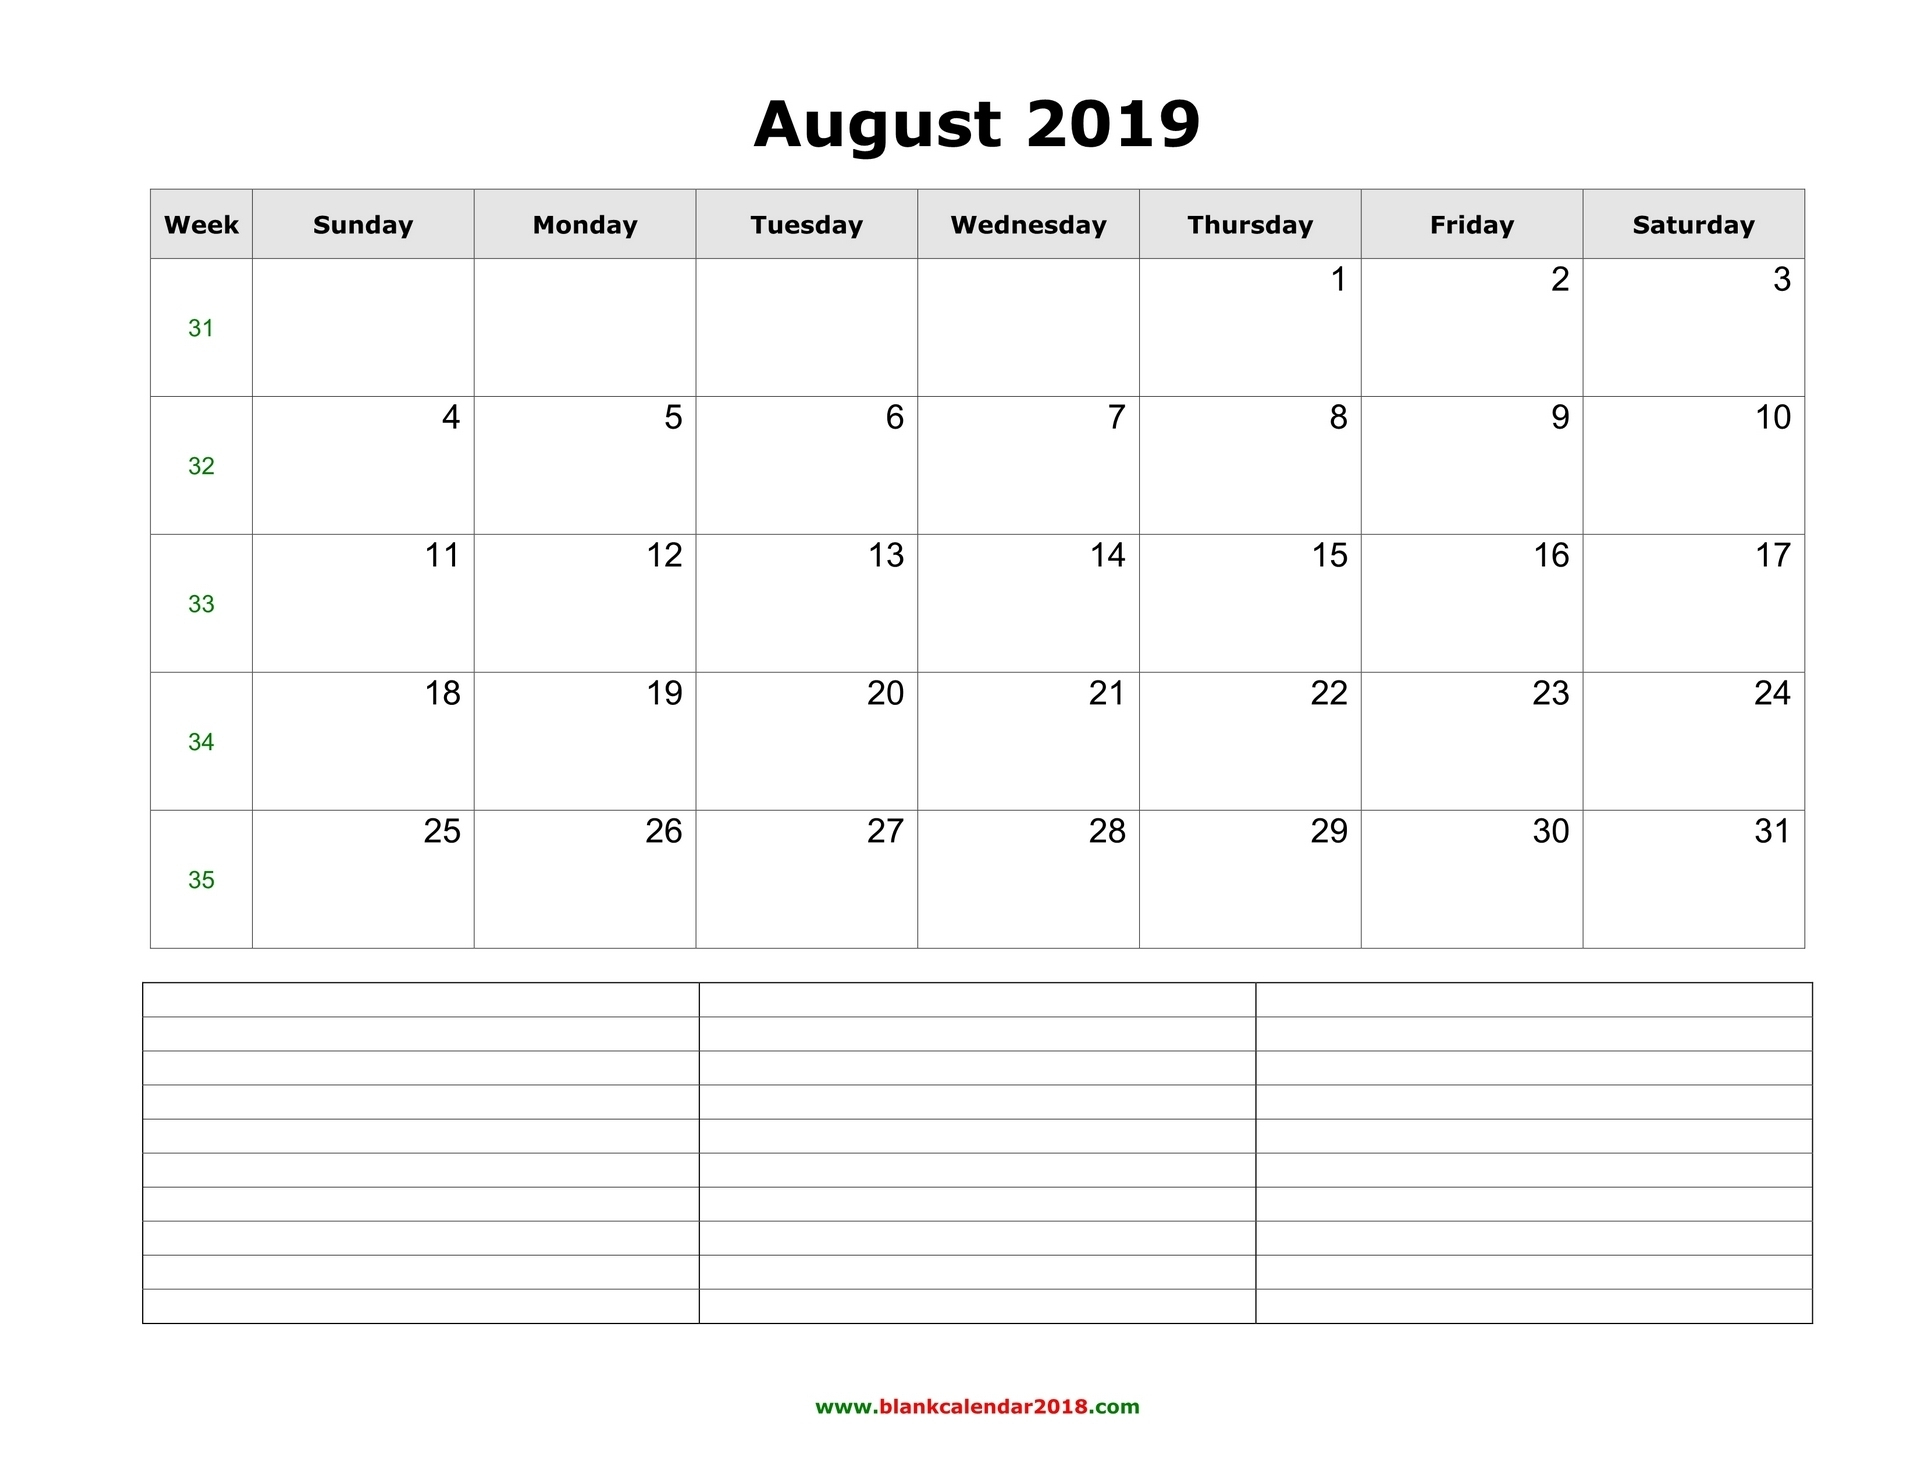 Fill In The Blank 2021 Calendar With Scripture   Calendar intended for August 2021 Fill In Calendar